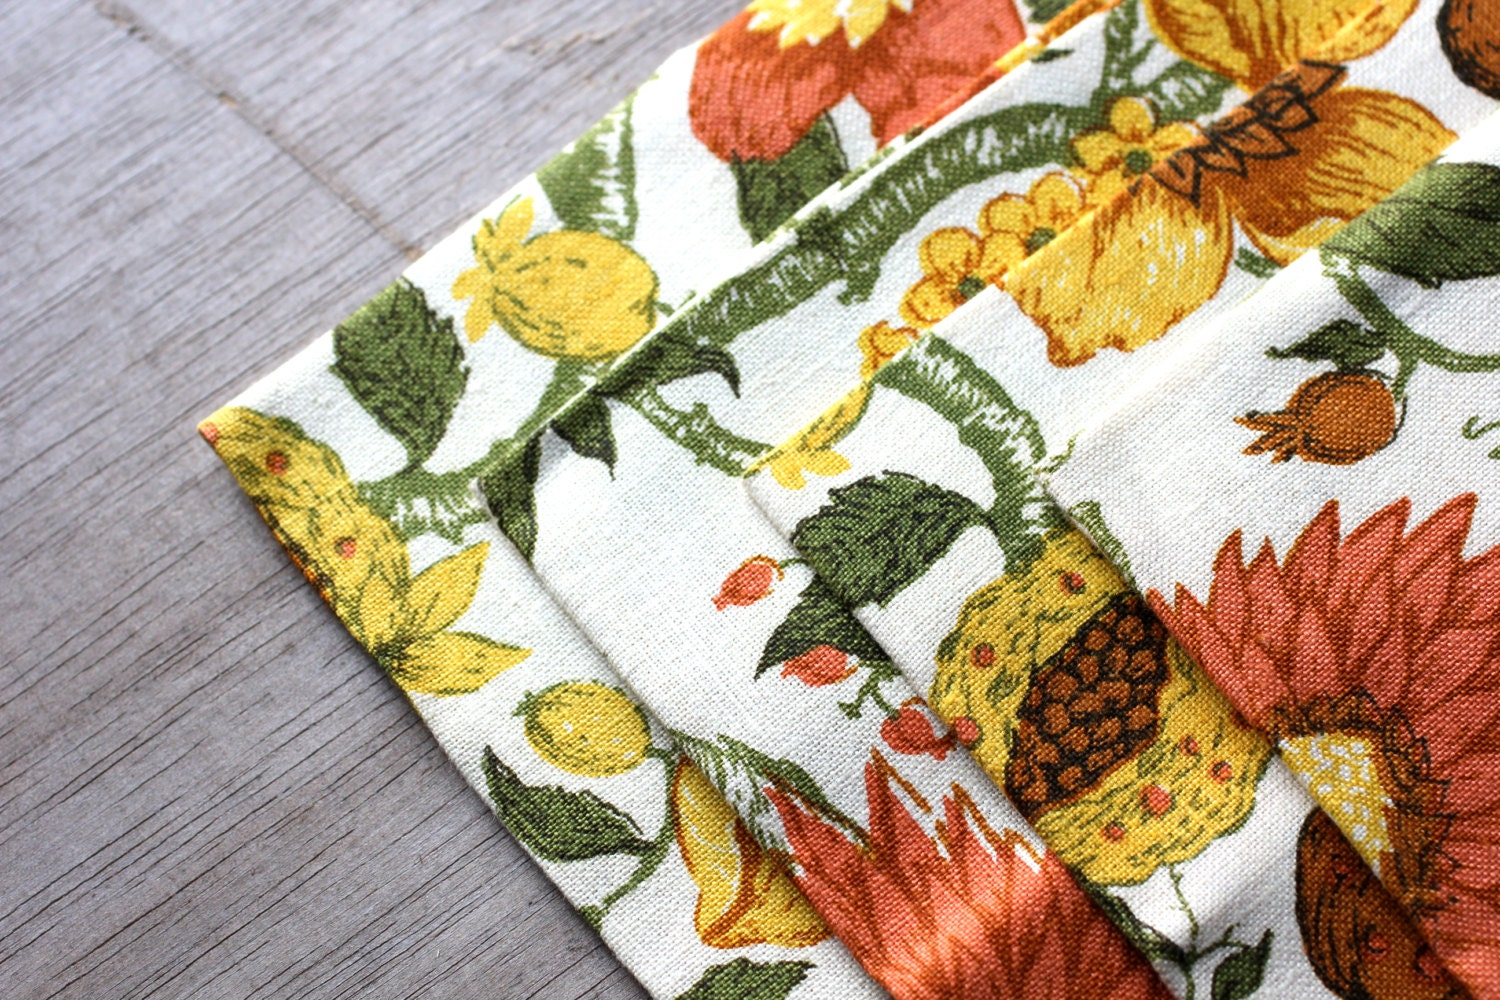 Flower Power - Set of Four Vintage Linen Napkins - Sunflower - Flowers - Spring - Yellow - Orange - Green - attentionvintage